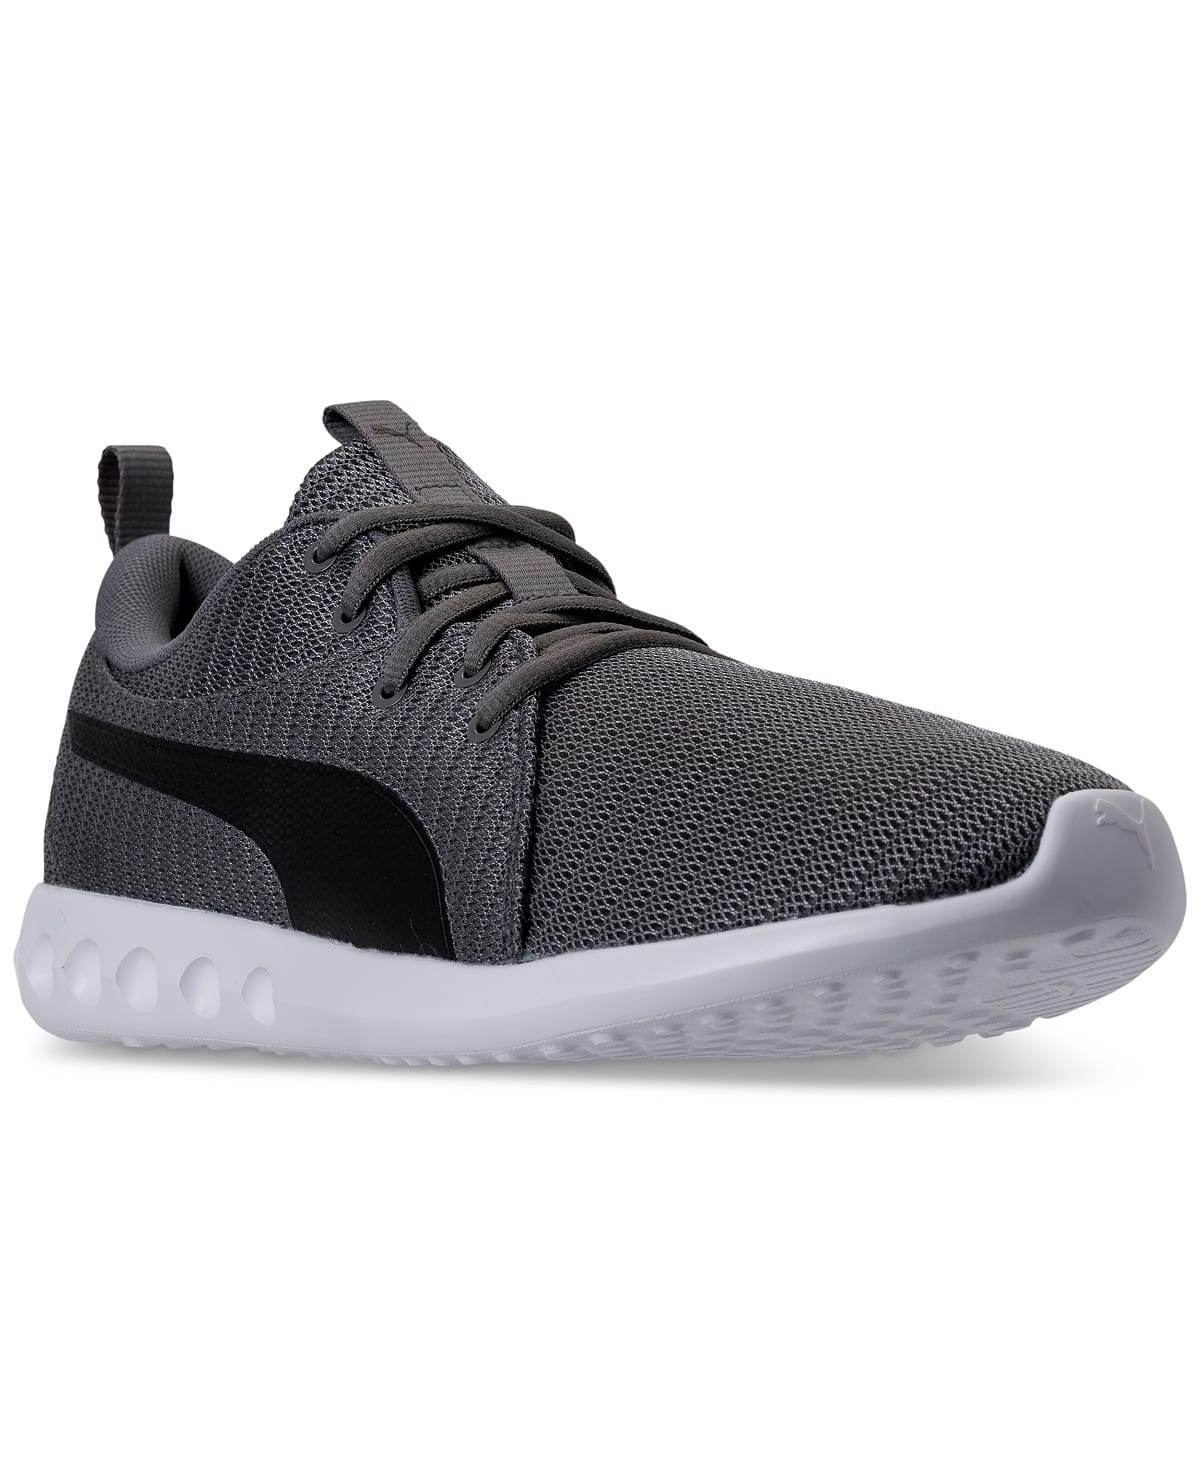 Puma Men's Carson 2 Casual Sneakers from Finish Line $30 + Free Shipping $29.98